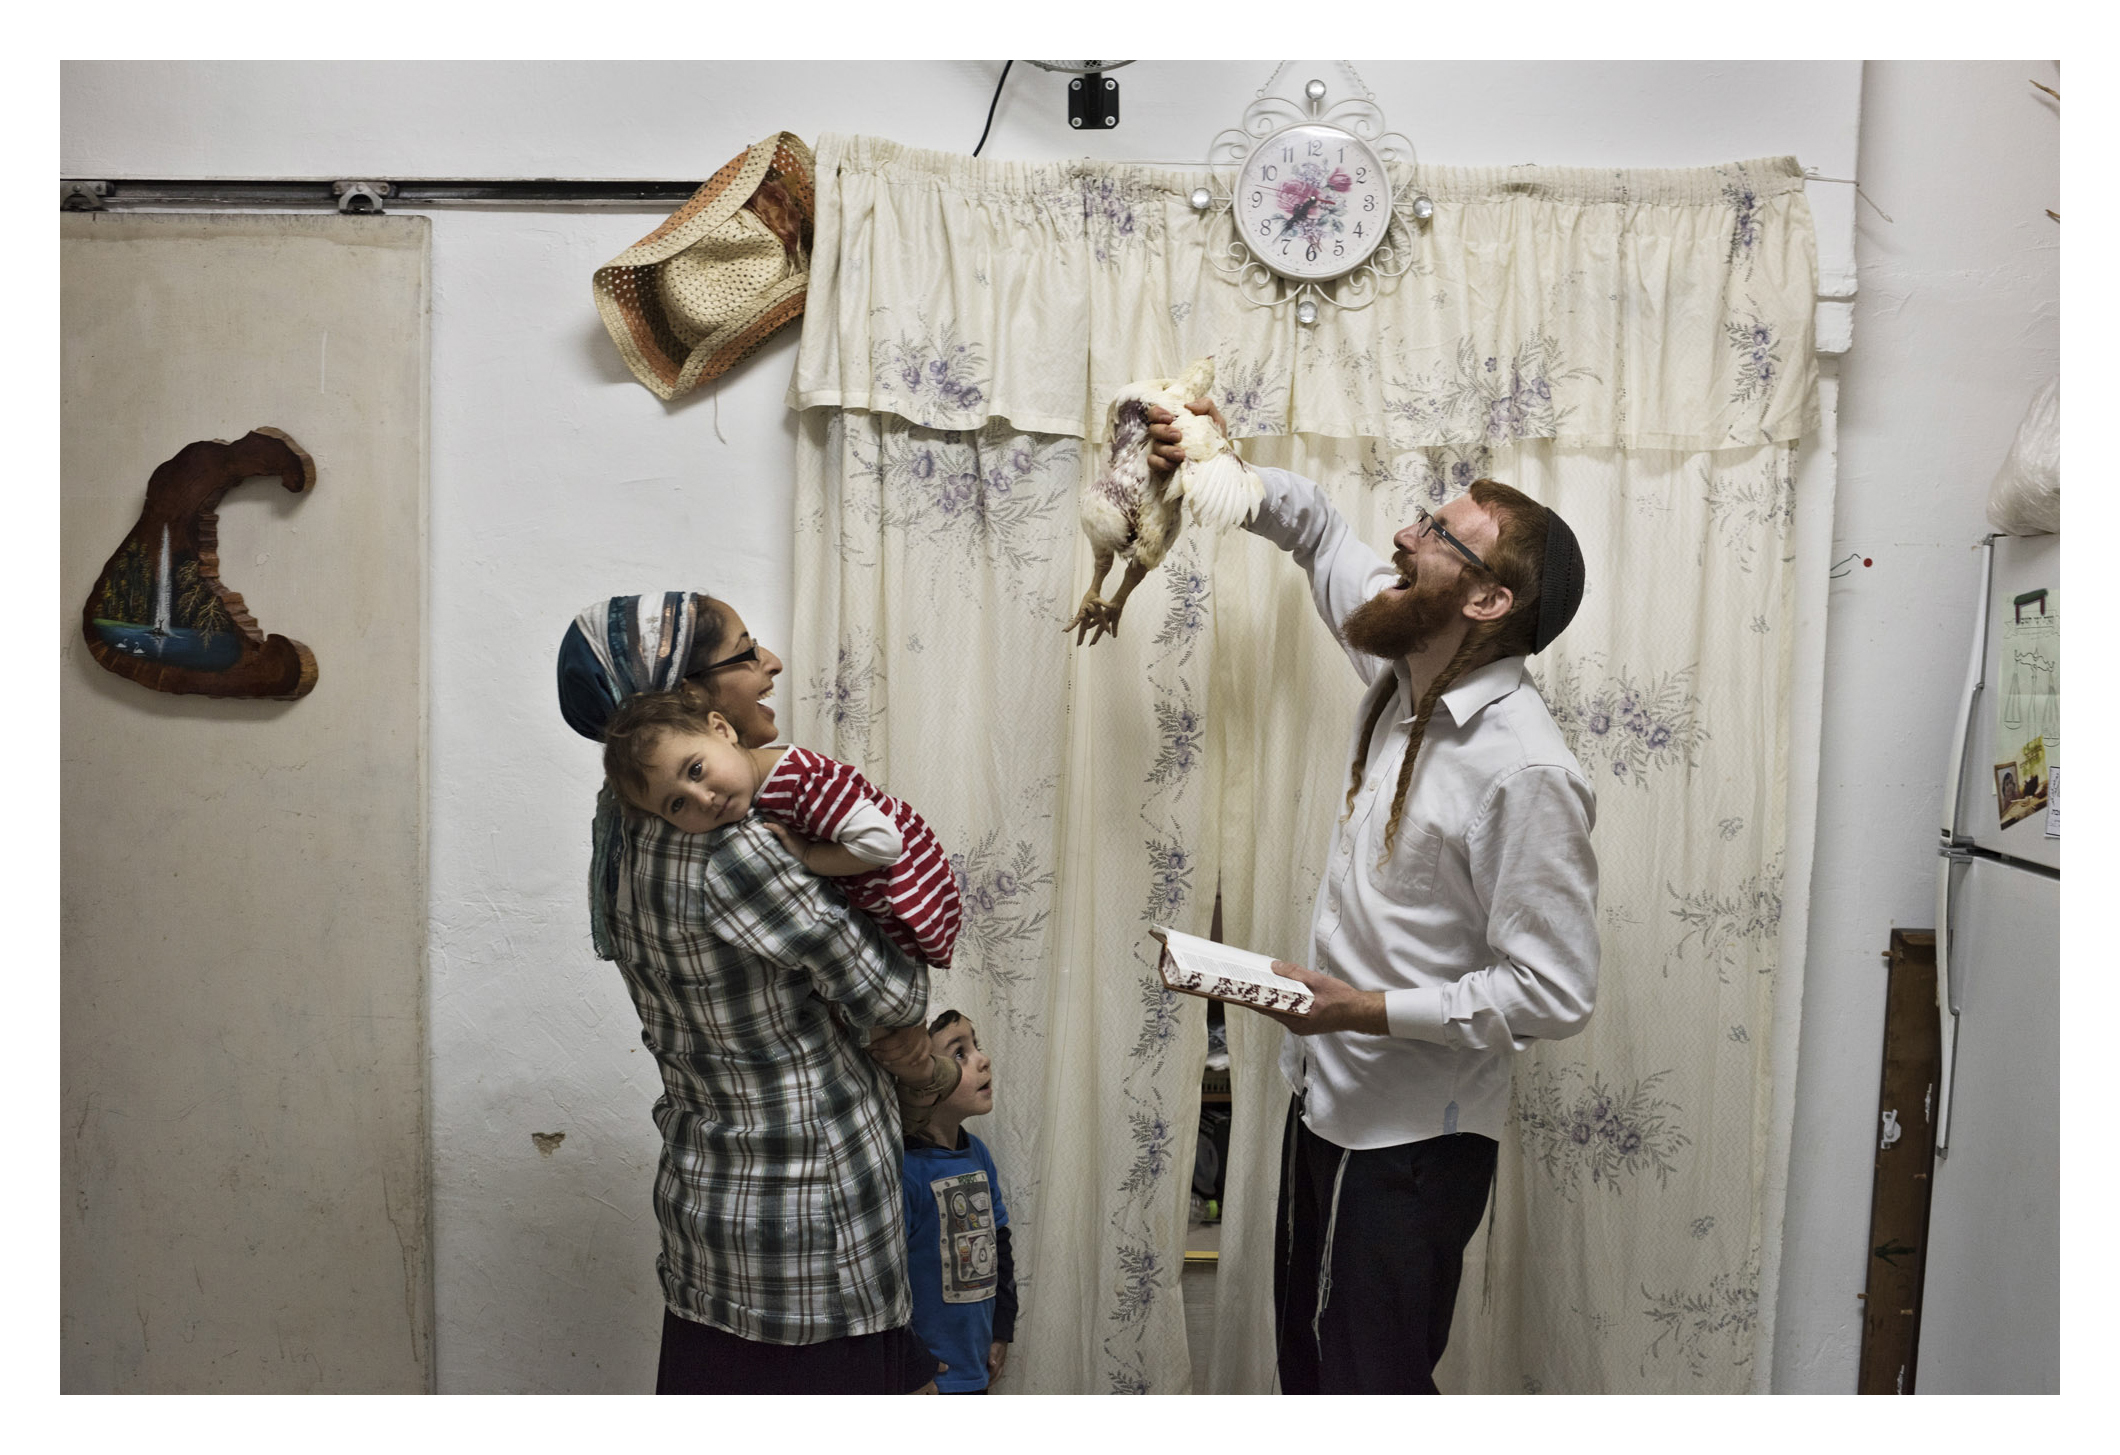 """Yossef is a follower of Rabbi Nachman of Breslav, a lighter, more mystical version of Judaism that appears stringent to secular Israelis but is borderline psychedellic to the ultra-Orthodox neighborhood of Mea Shearim, where he was born and raised. He buys a chicken for the yearly """"kaparot"""" ritual - the passing of one's sins onto a chicken that is ritually killed and is given to the poor for a holiday meal. Yossef loves animals; he always brings home strays, despite orthodox Judaism's ambivalent approach to pets, and normally he donates money to charity directly, but this year he wanted to acquiant his son with the sacrifice. He talks to the chicken, feeds it a children's snack and solemnly wipes its bottom when it defecates on his spotless kitchen floor. He works in real estate and is about to move to a settlement; he's not into politics but says atmosphere there is so much more liberal than in the largely anti-Zionist, ultra-conservative Mea Shearim. The chicken flutters onto his shoulder. He grabs it by the feet, gently spinning the chicken over his sons head while reading the relevant invocation; and walks it off to slaughter."""